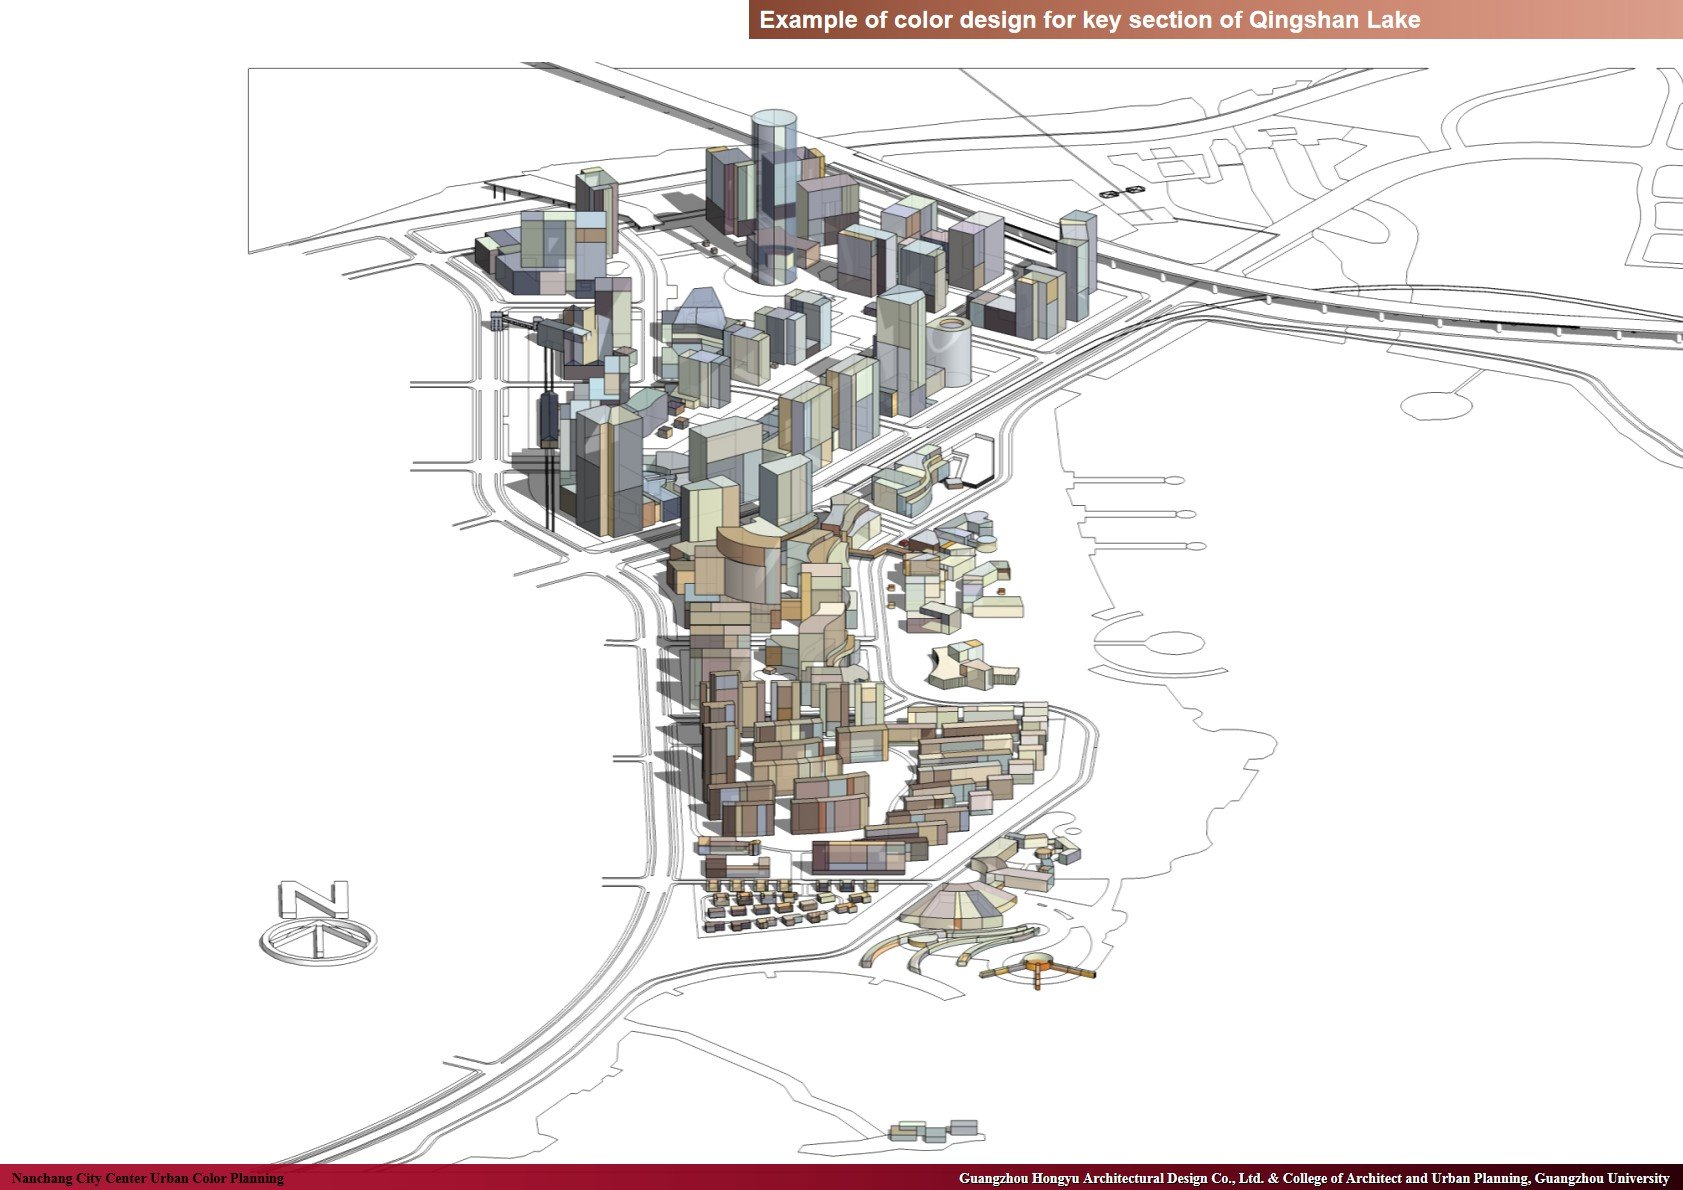 Example of color design for key section of Qingshan Lake Guangzhou Hongyu Architectural Design Co., Ltd. & College of Architect and Urban Planning, Guangzhou University